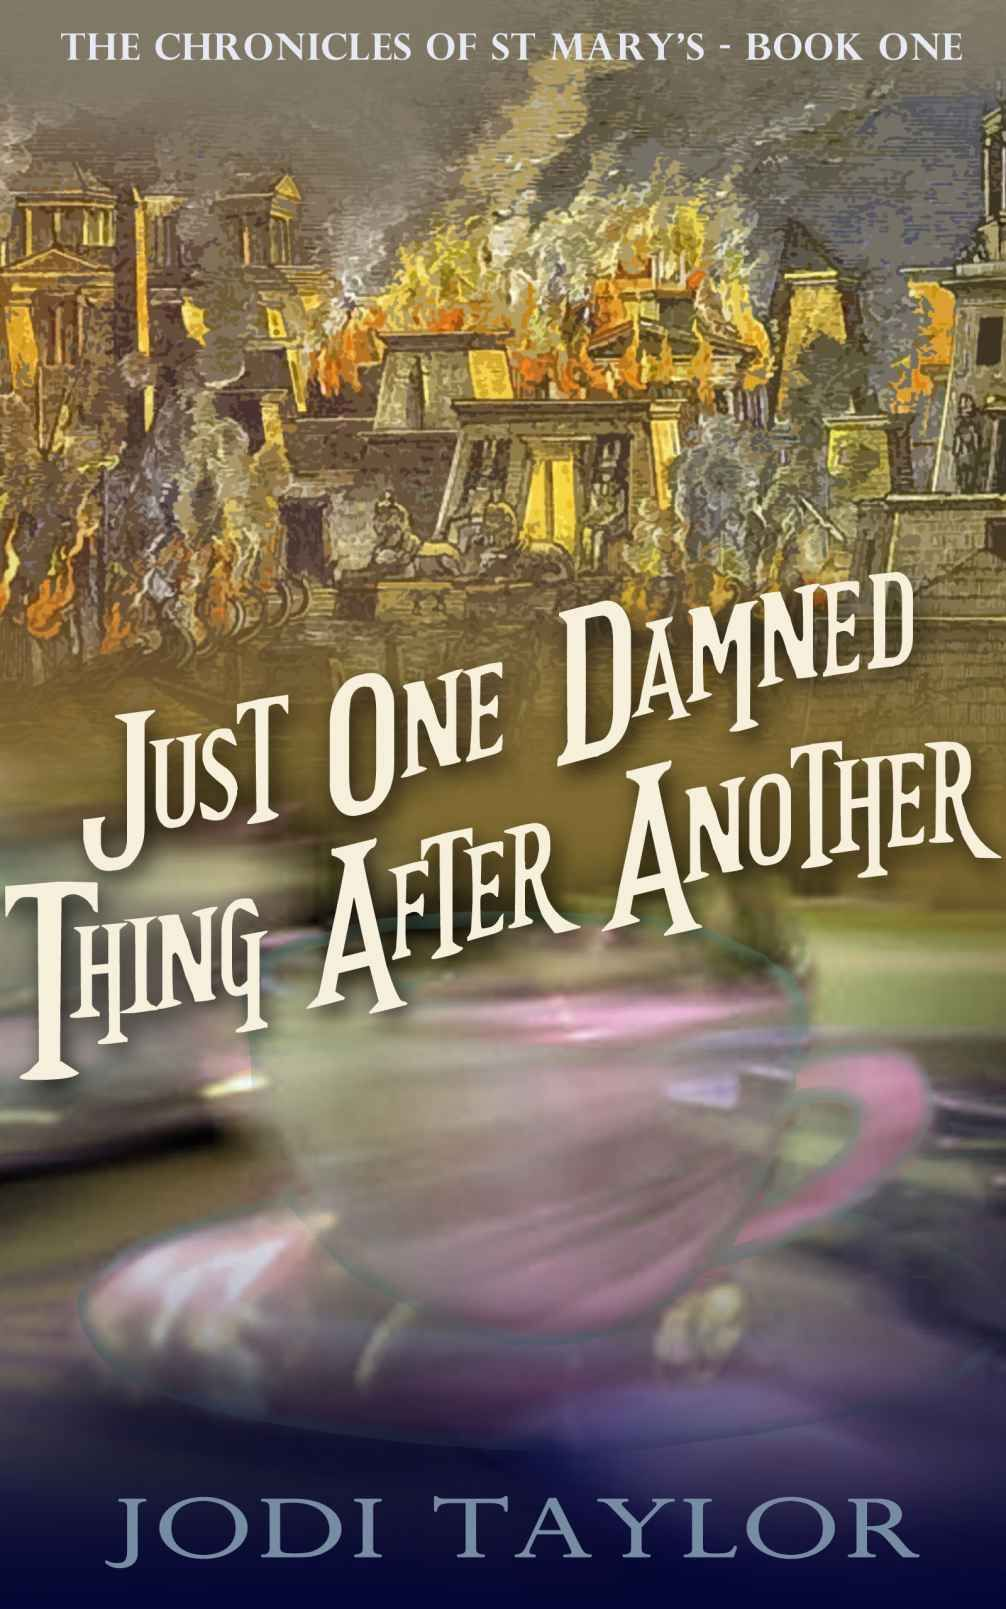 Amazon: Just One Damned Thing After Another (the Chronicles Of St Mary